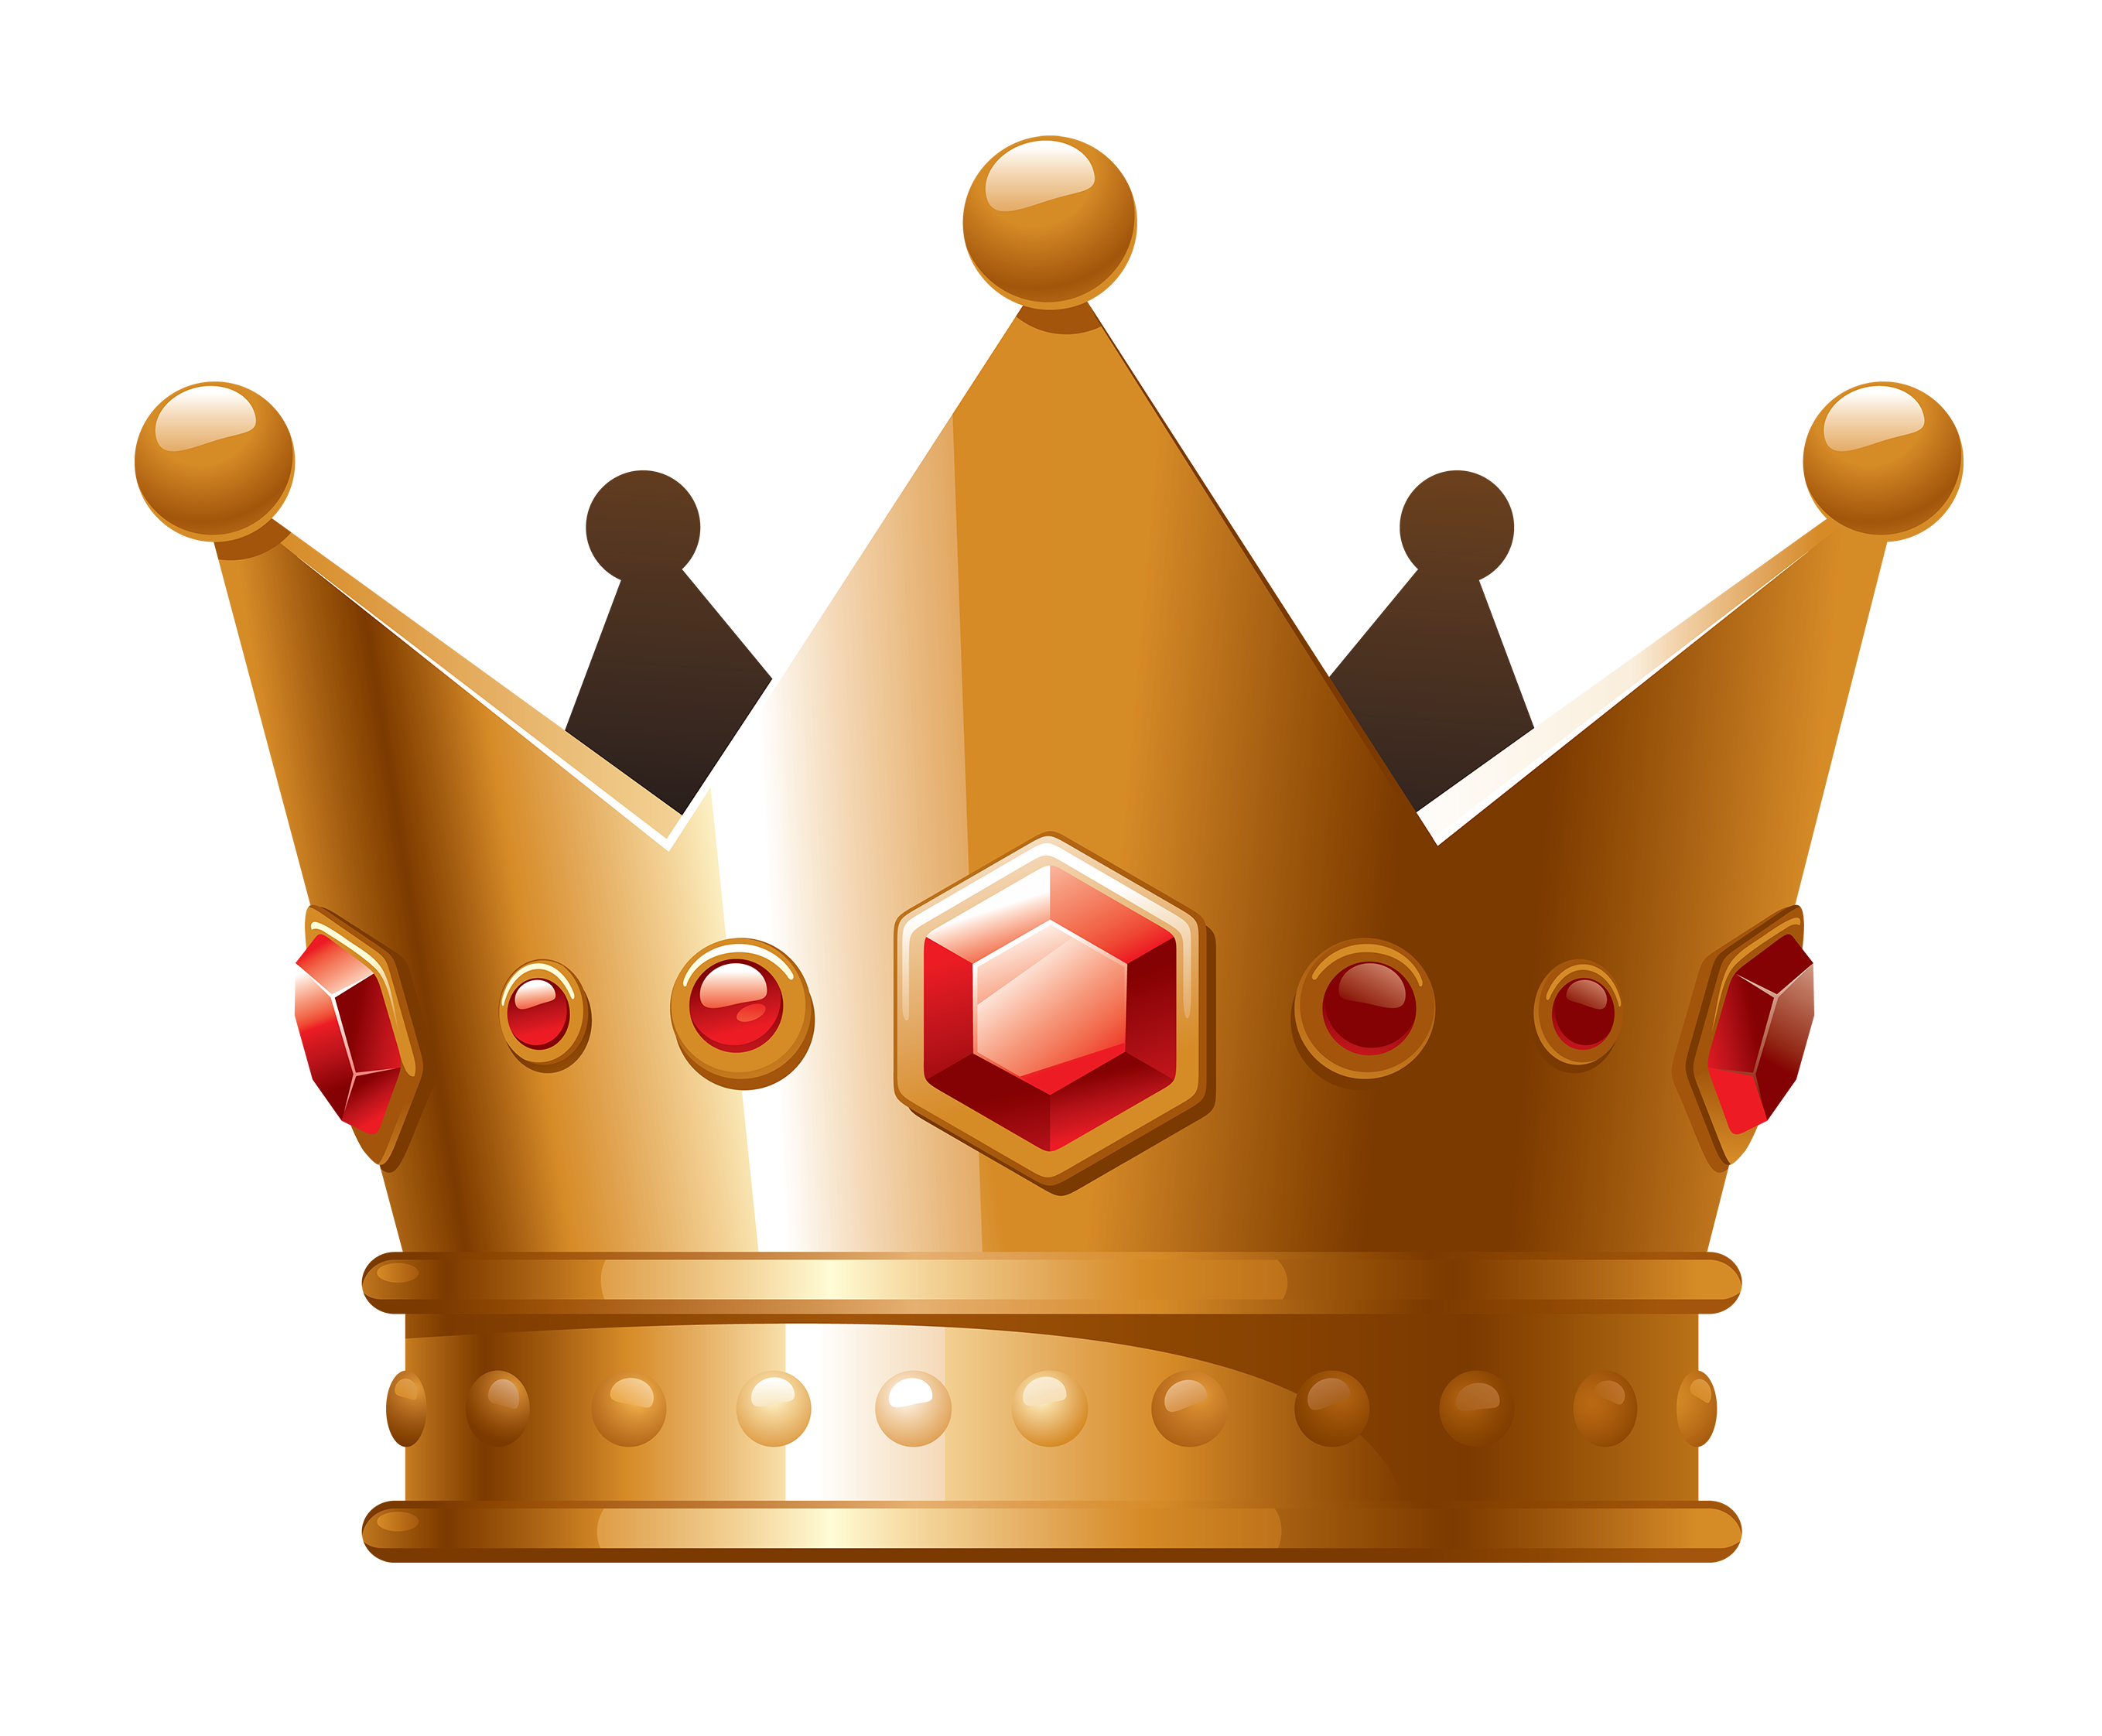 Crown with red jewels clipart vector freeuse Crown Clip art - Cartoon crown jewels 2717*2244 transprent Png Free ... vector freeuse